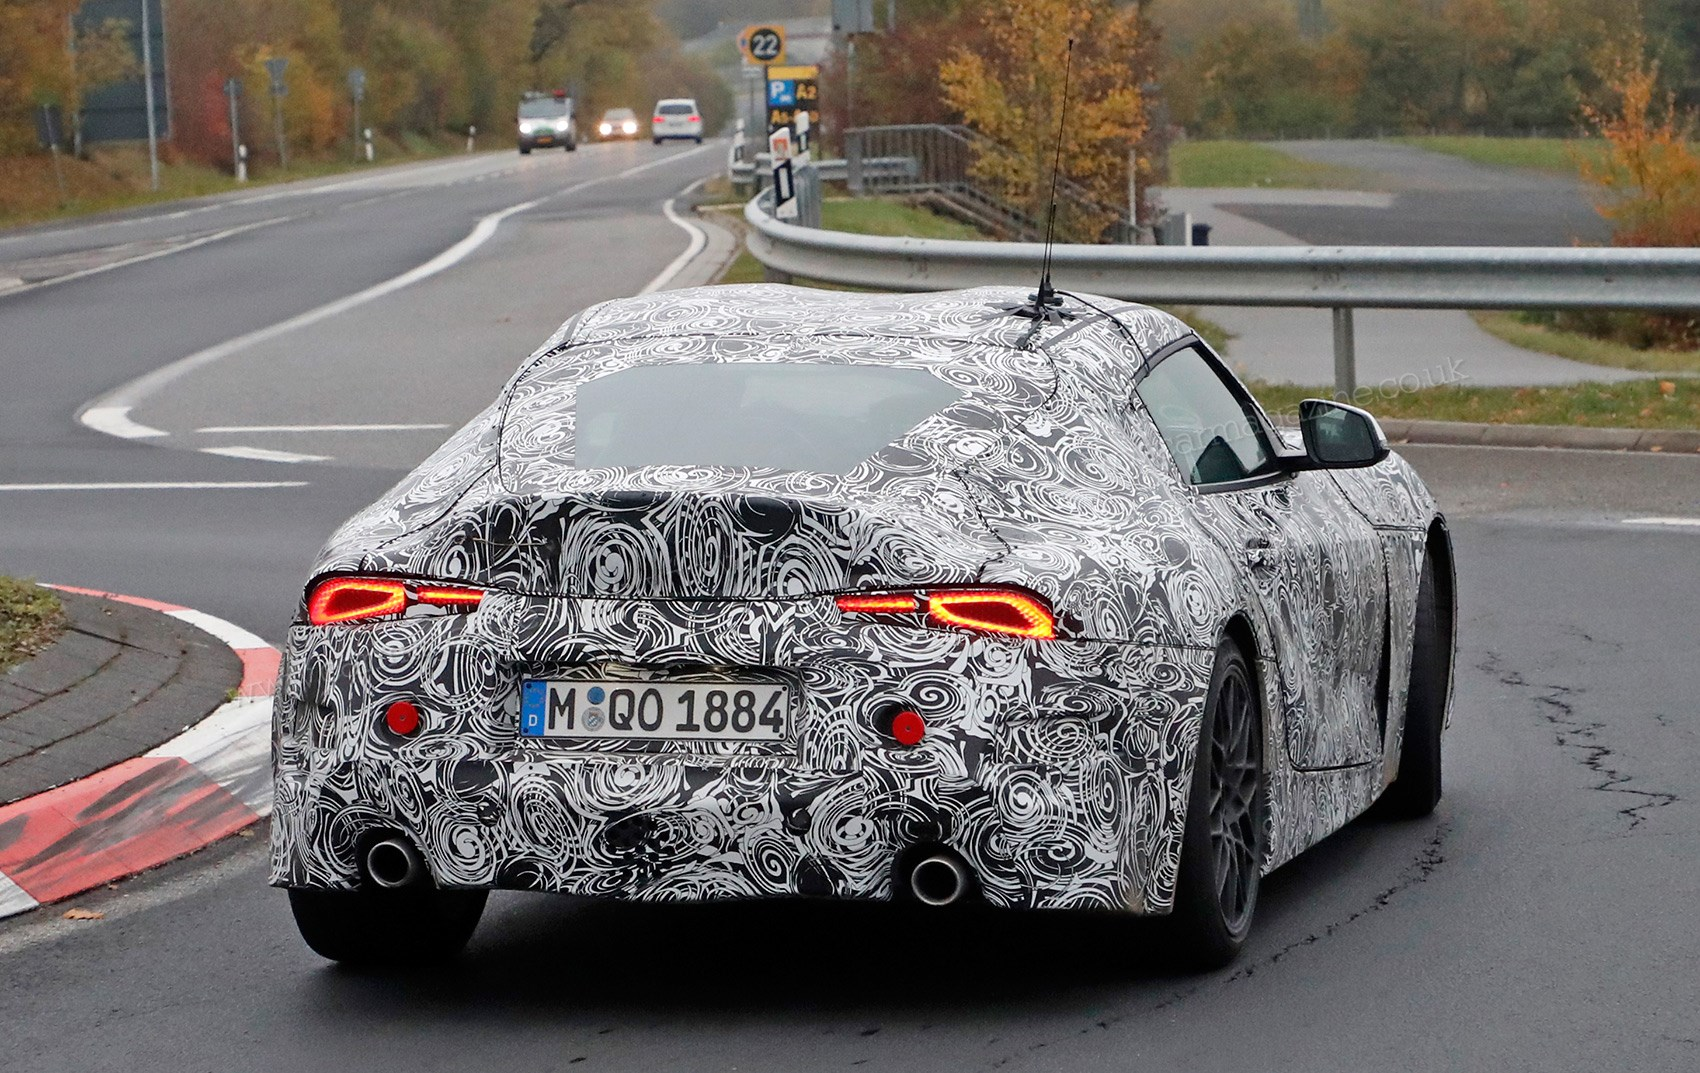 Merveilleux LED Rear Lights Visible Through The Camo On This Toyota Supra Prototype